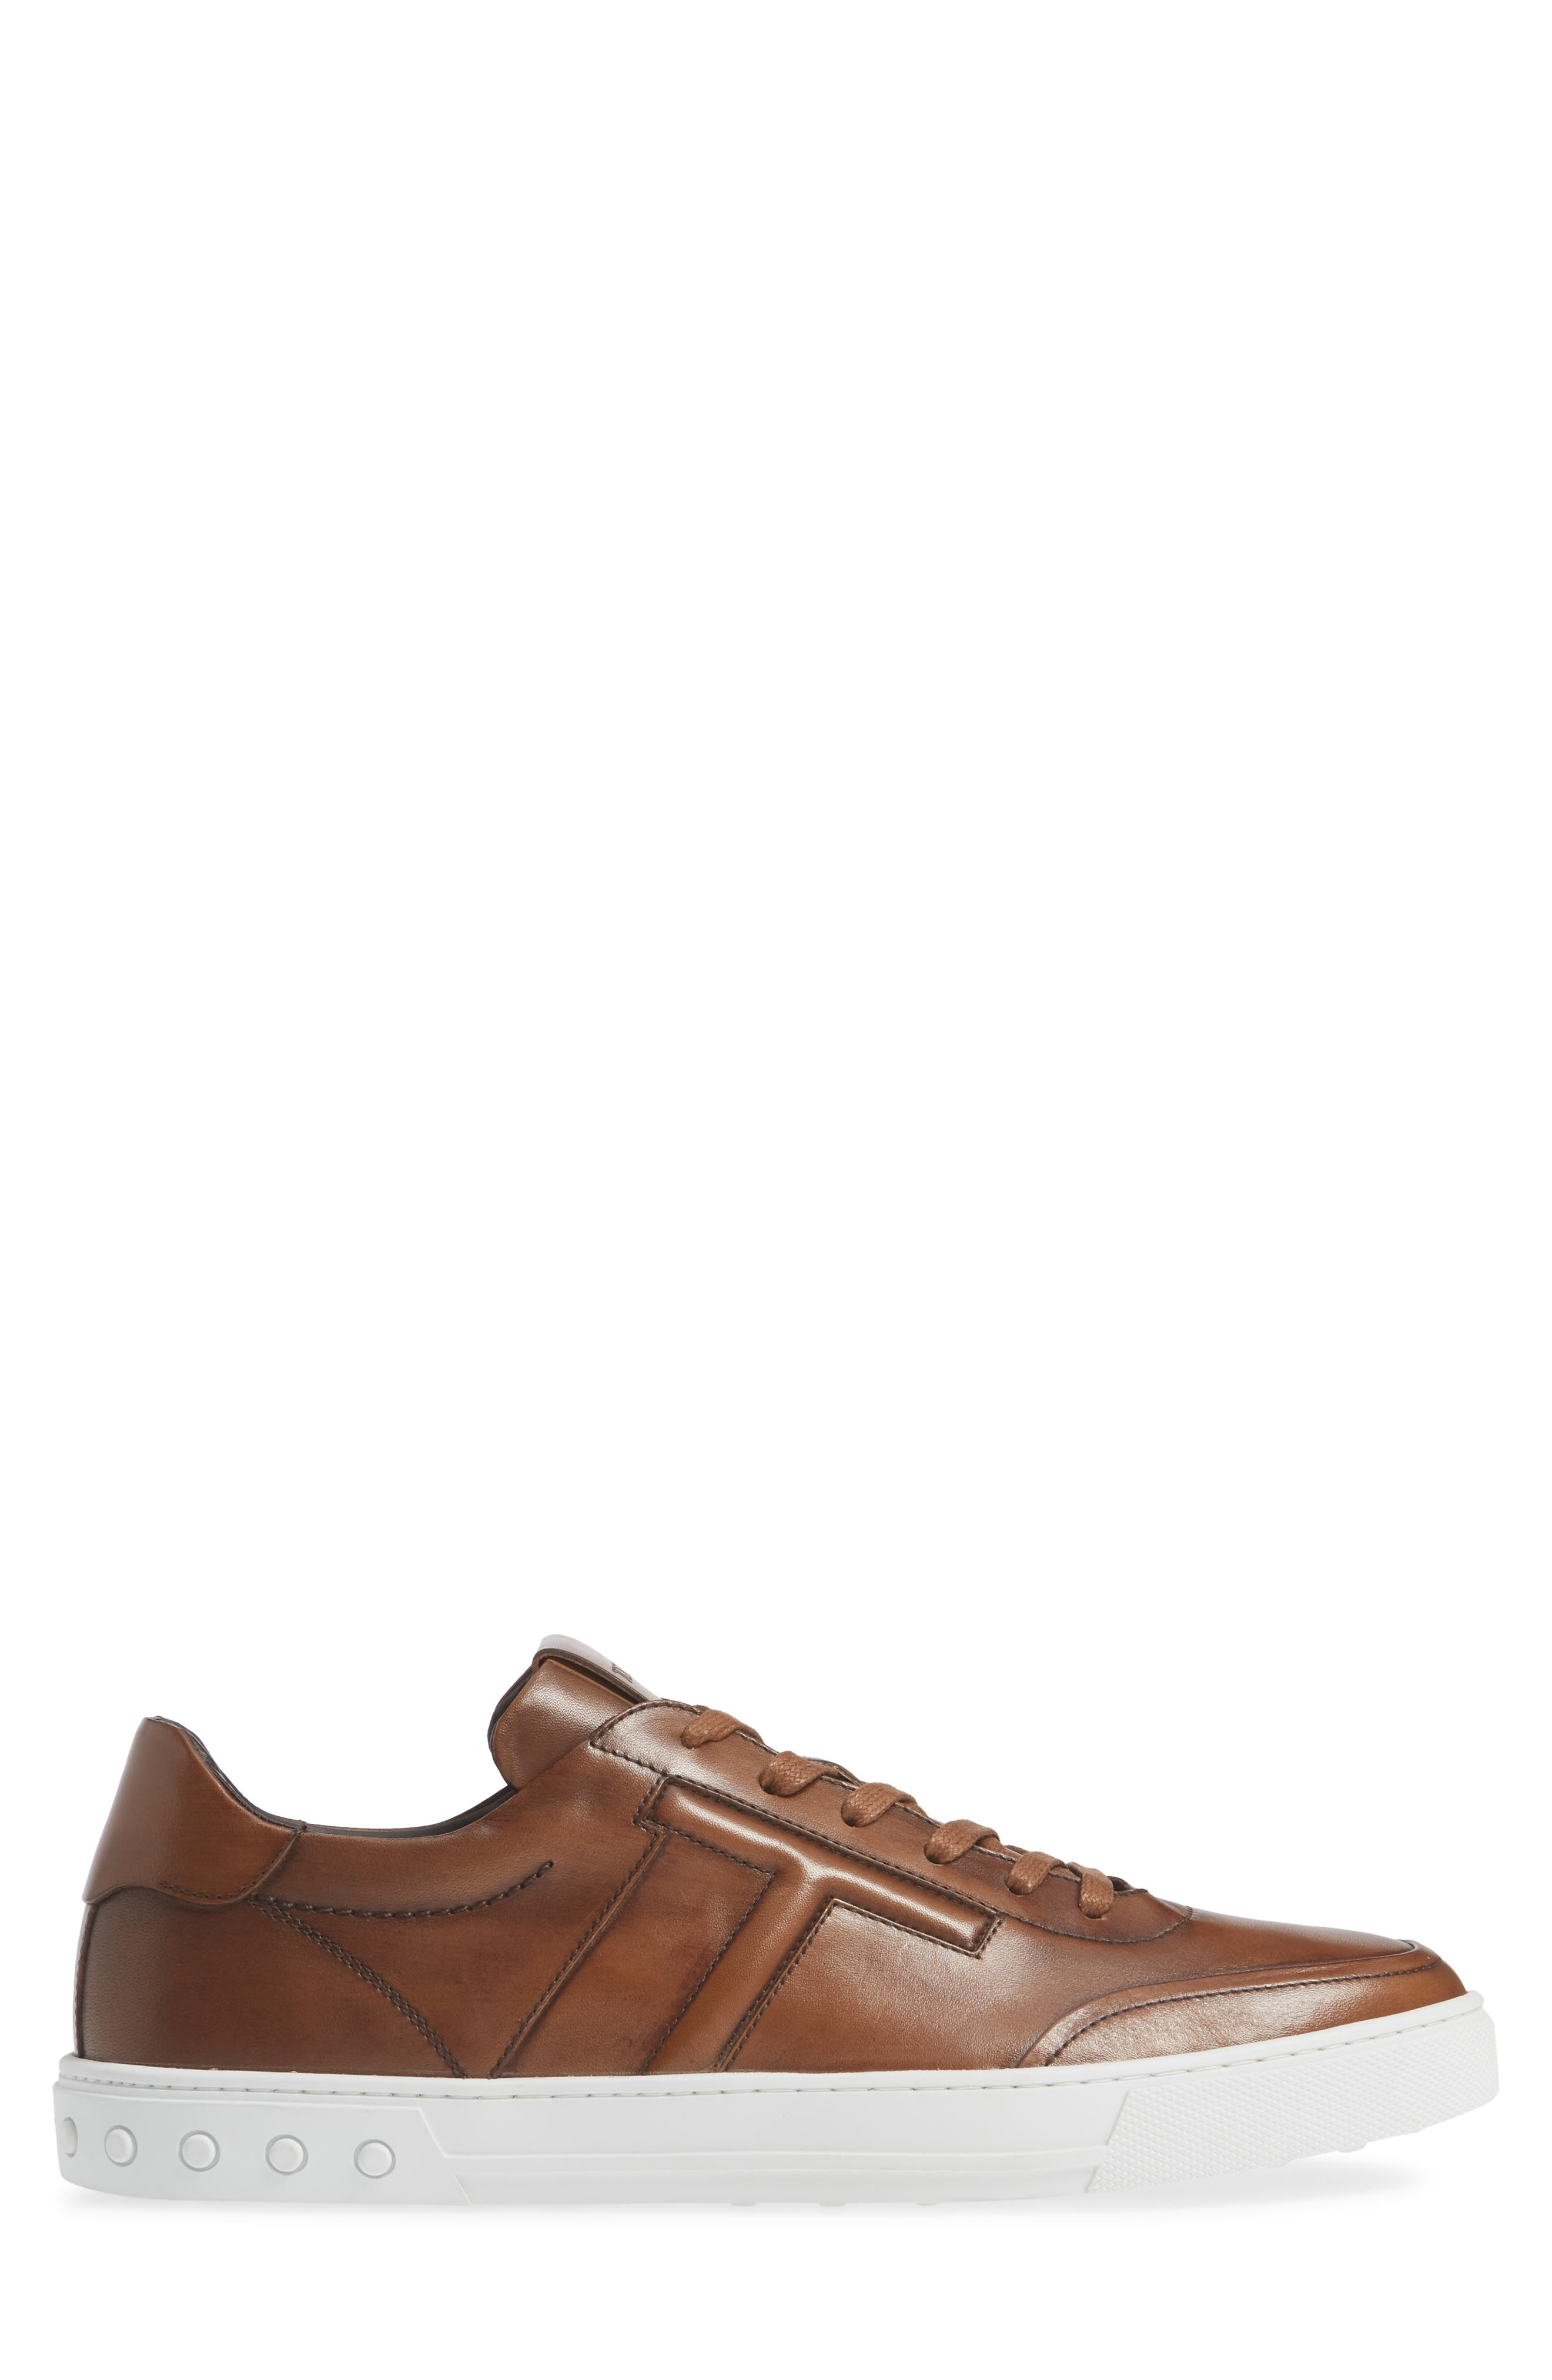 TOD'S, 'Cassetta' Sneaker, Alternate thumbnail 3, color, CARAMEL/ SPECIAL LEATHER